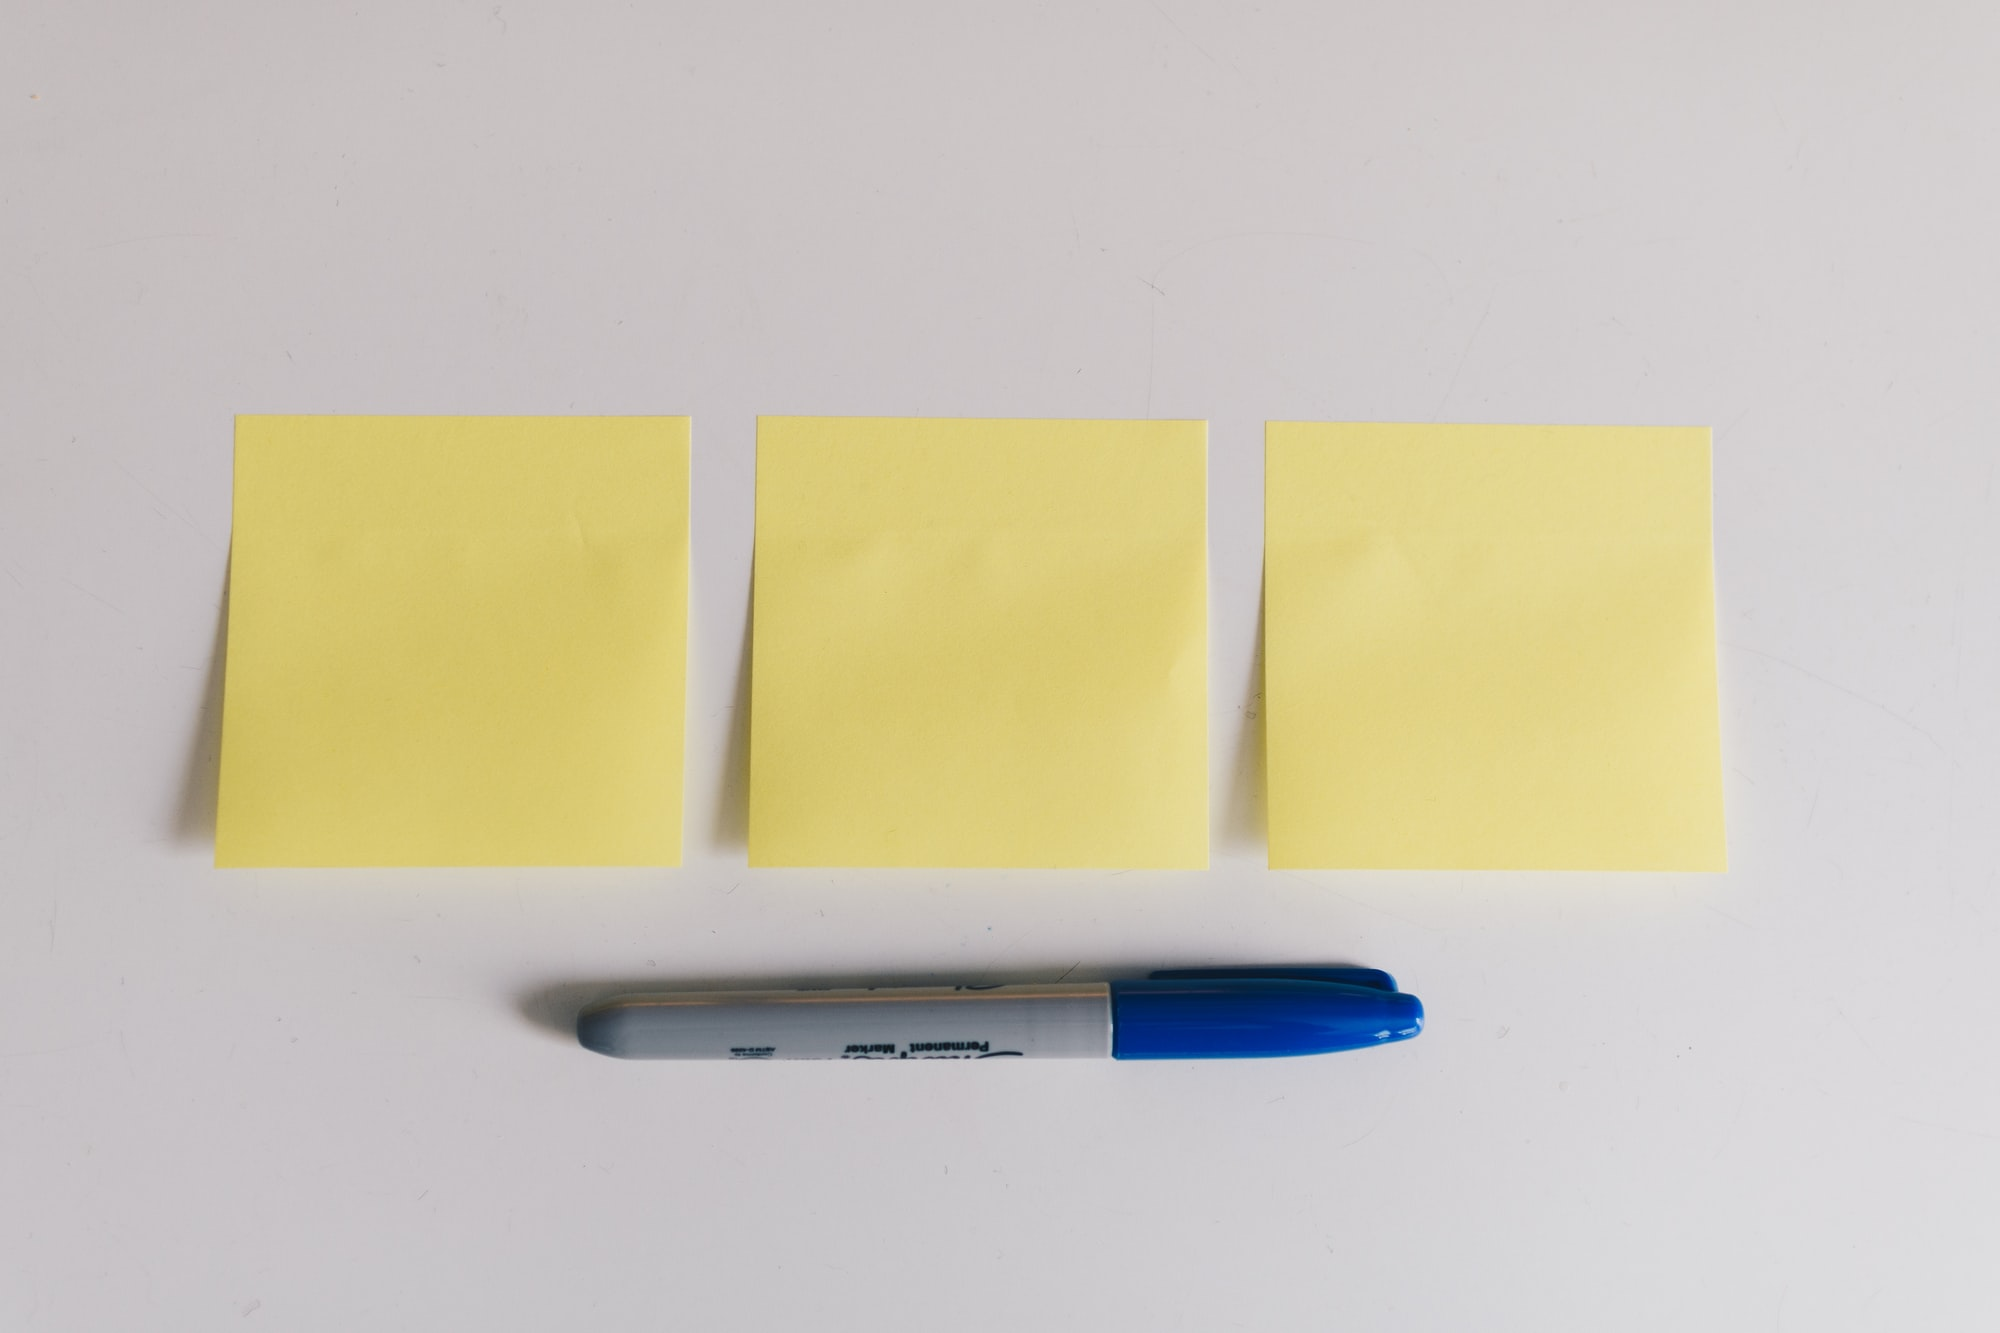 Finding the Perfect Productivity System